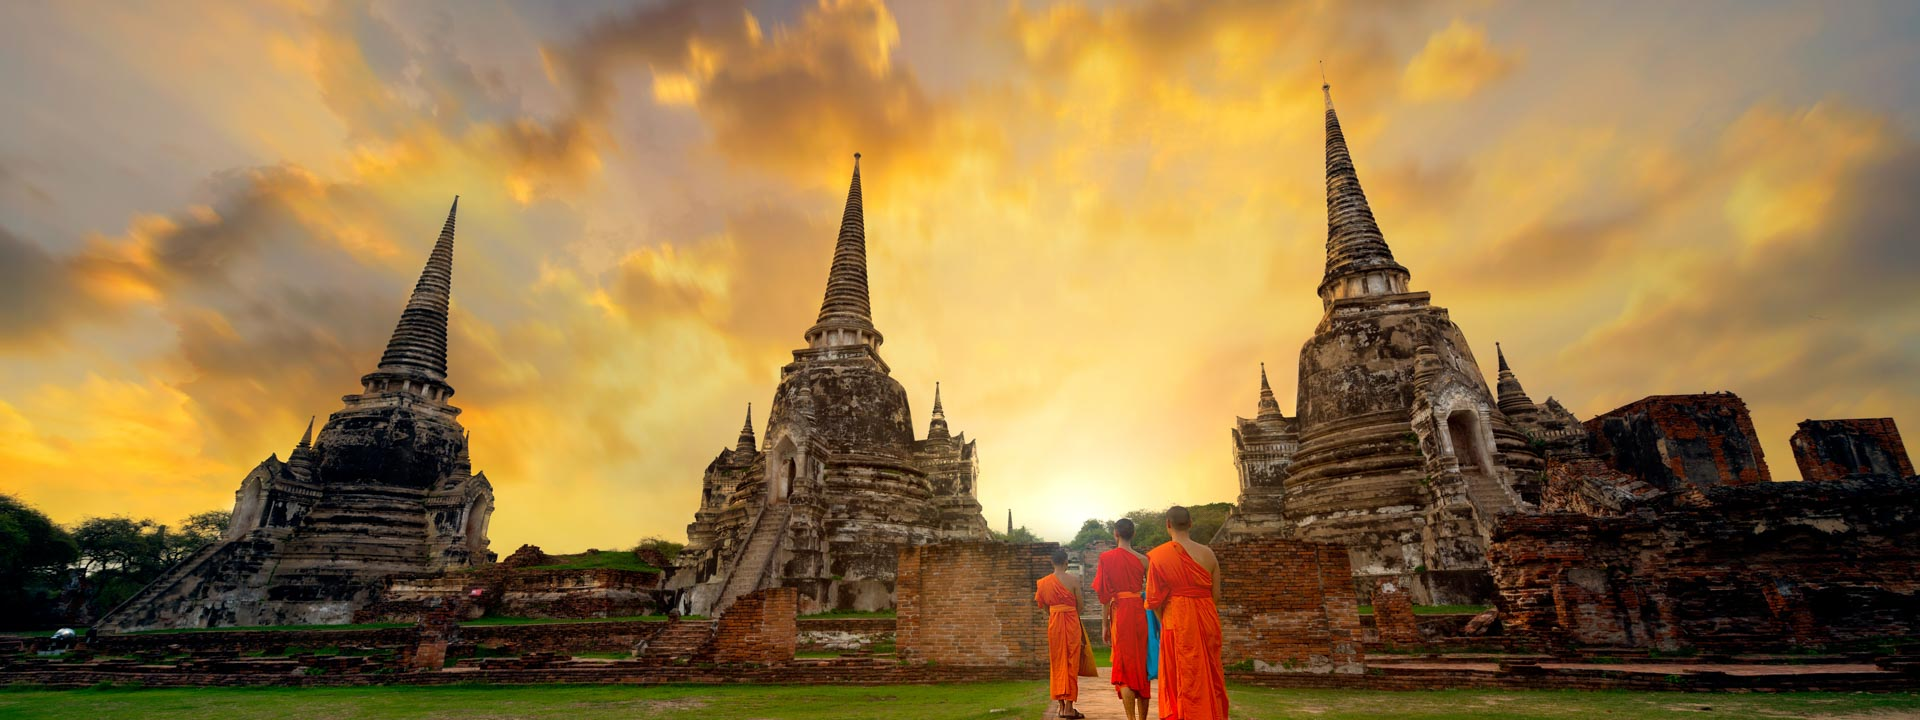 Laos Vietnam Cambodia tour 24 days